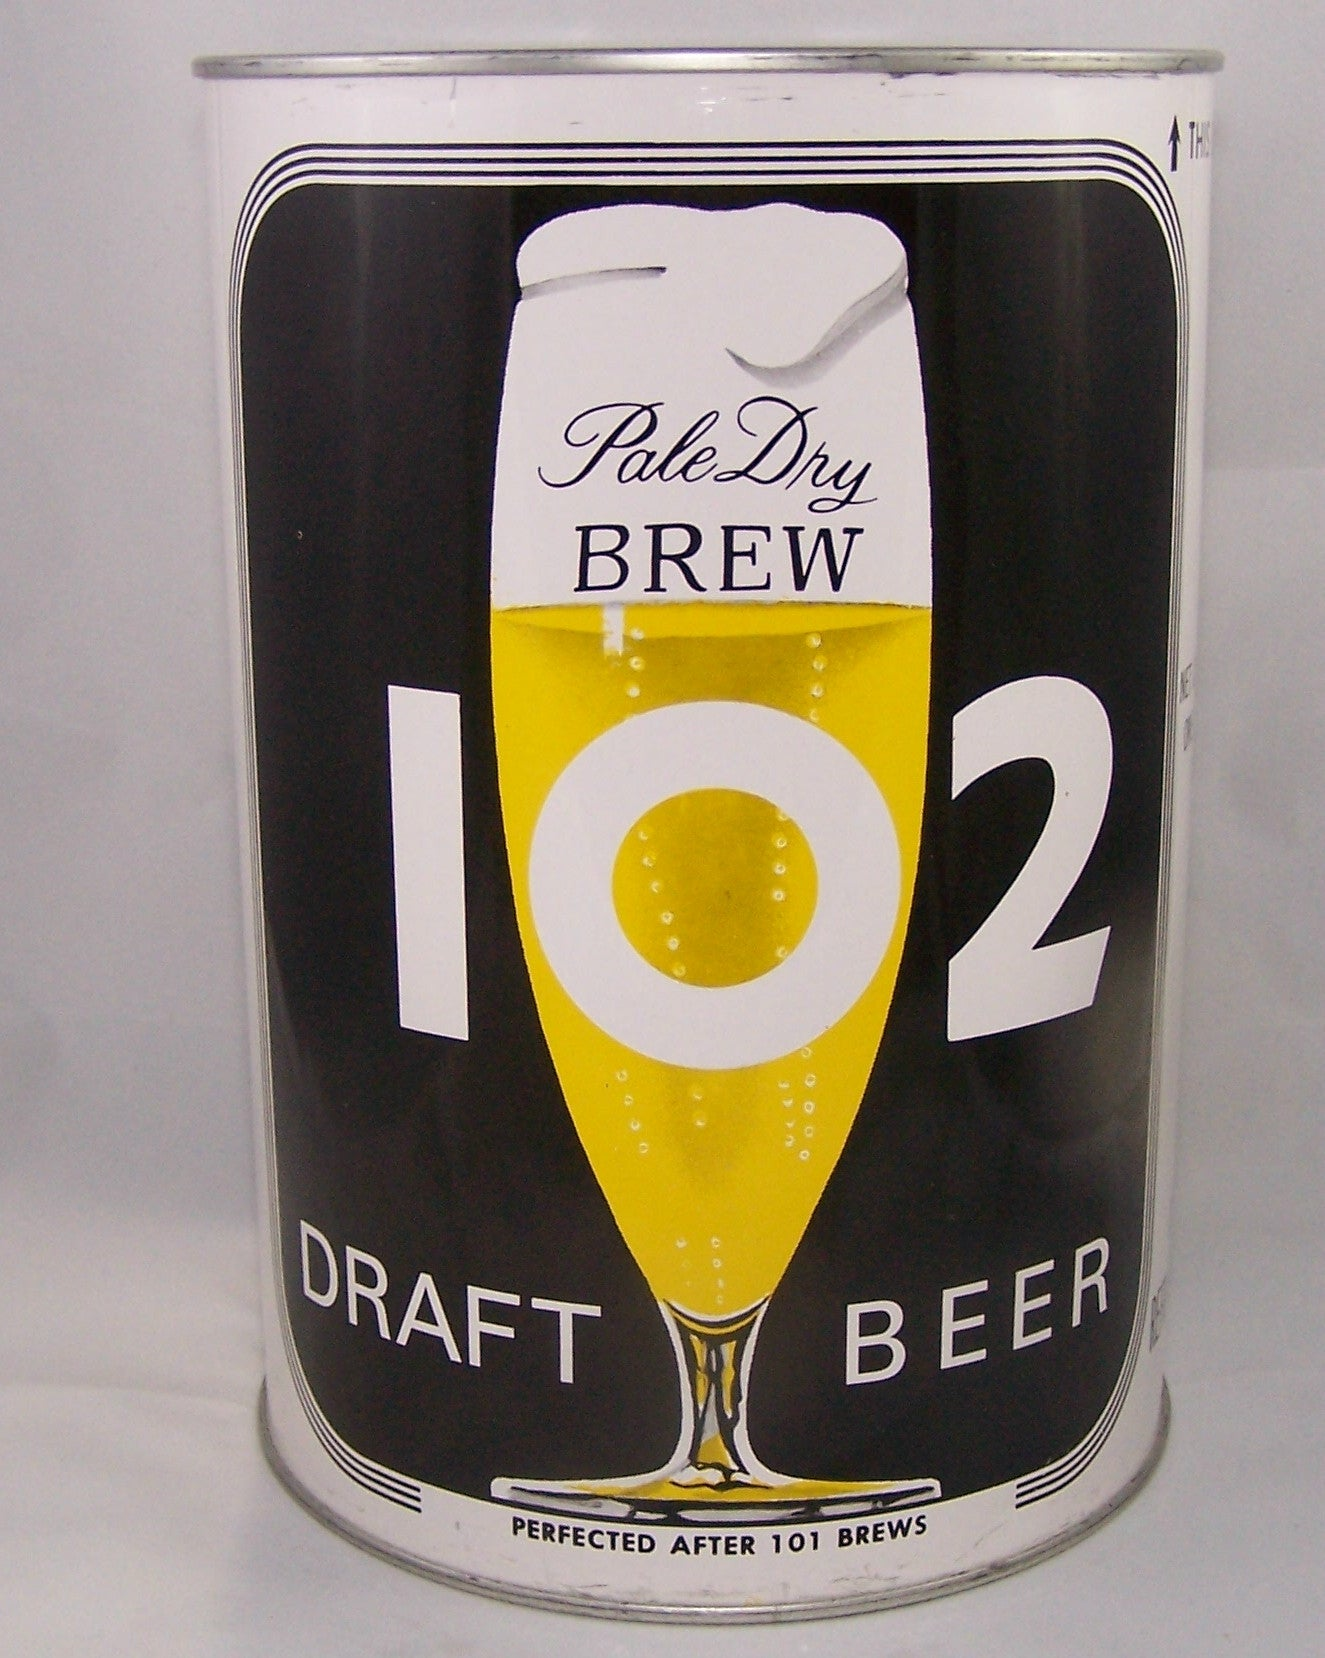 Brew 102 Draft Beer, USBC 244-5 Grade A1+ Sold on 03/17/16